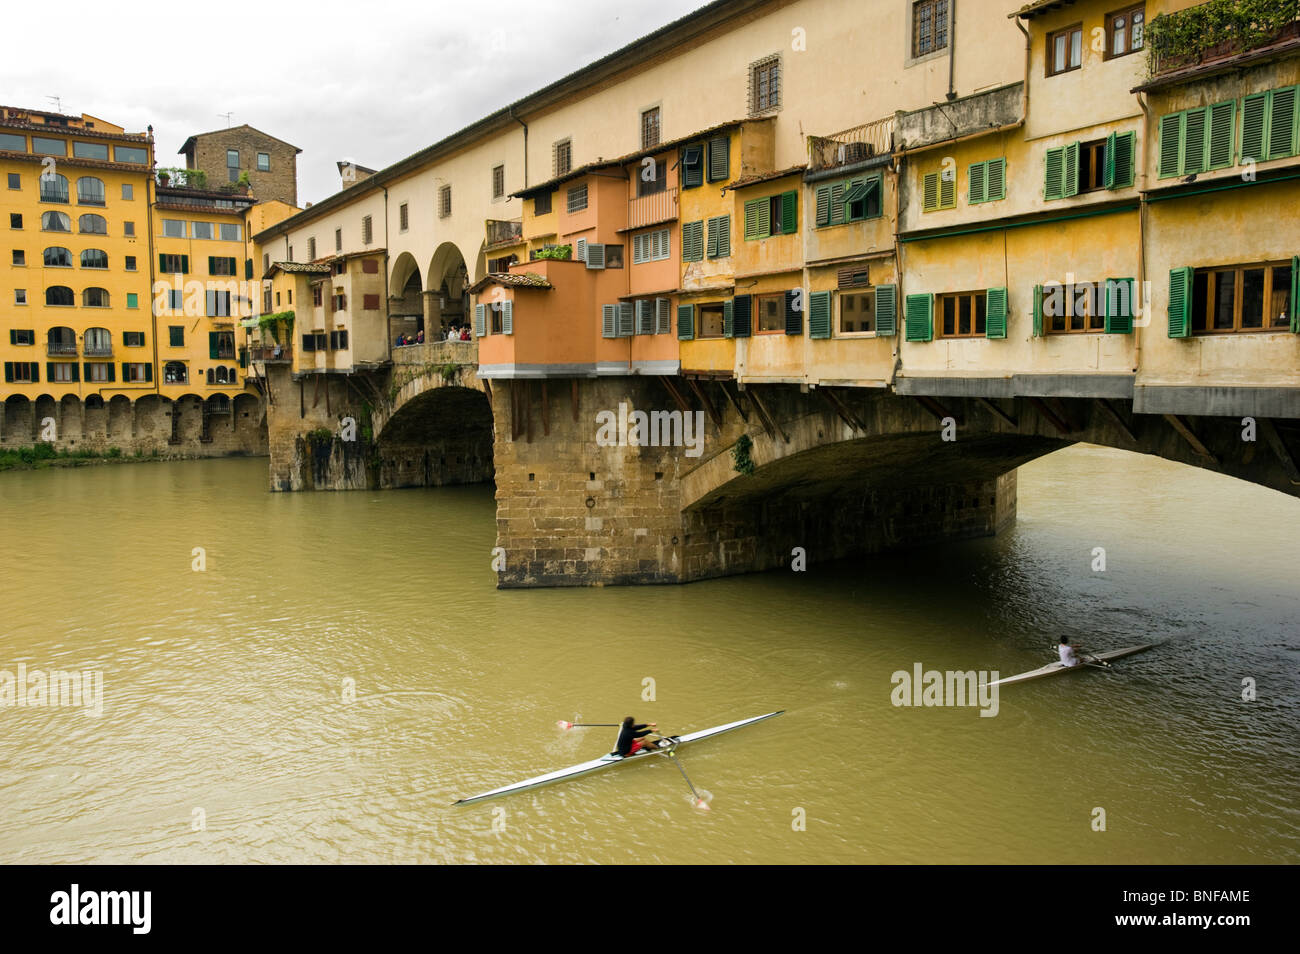 The Ponte Vecchio, Medieval bridge over the Arno River, in Florence, Italy. - Stock Image